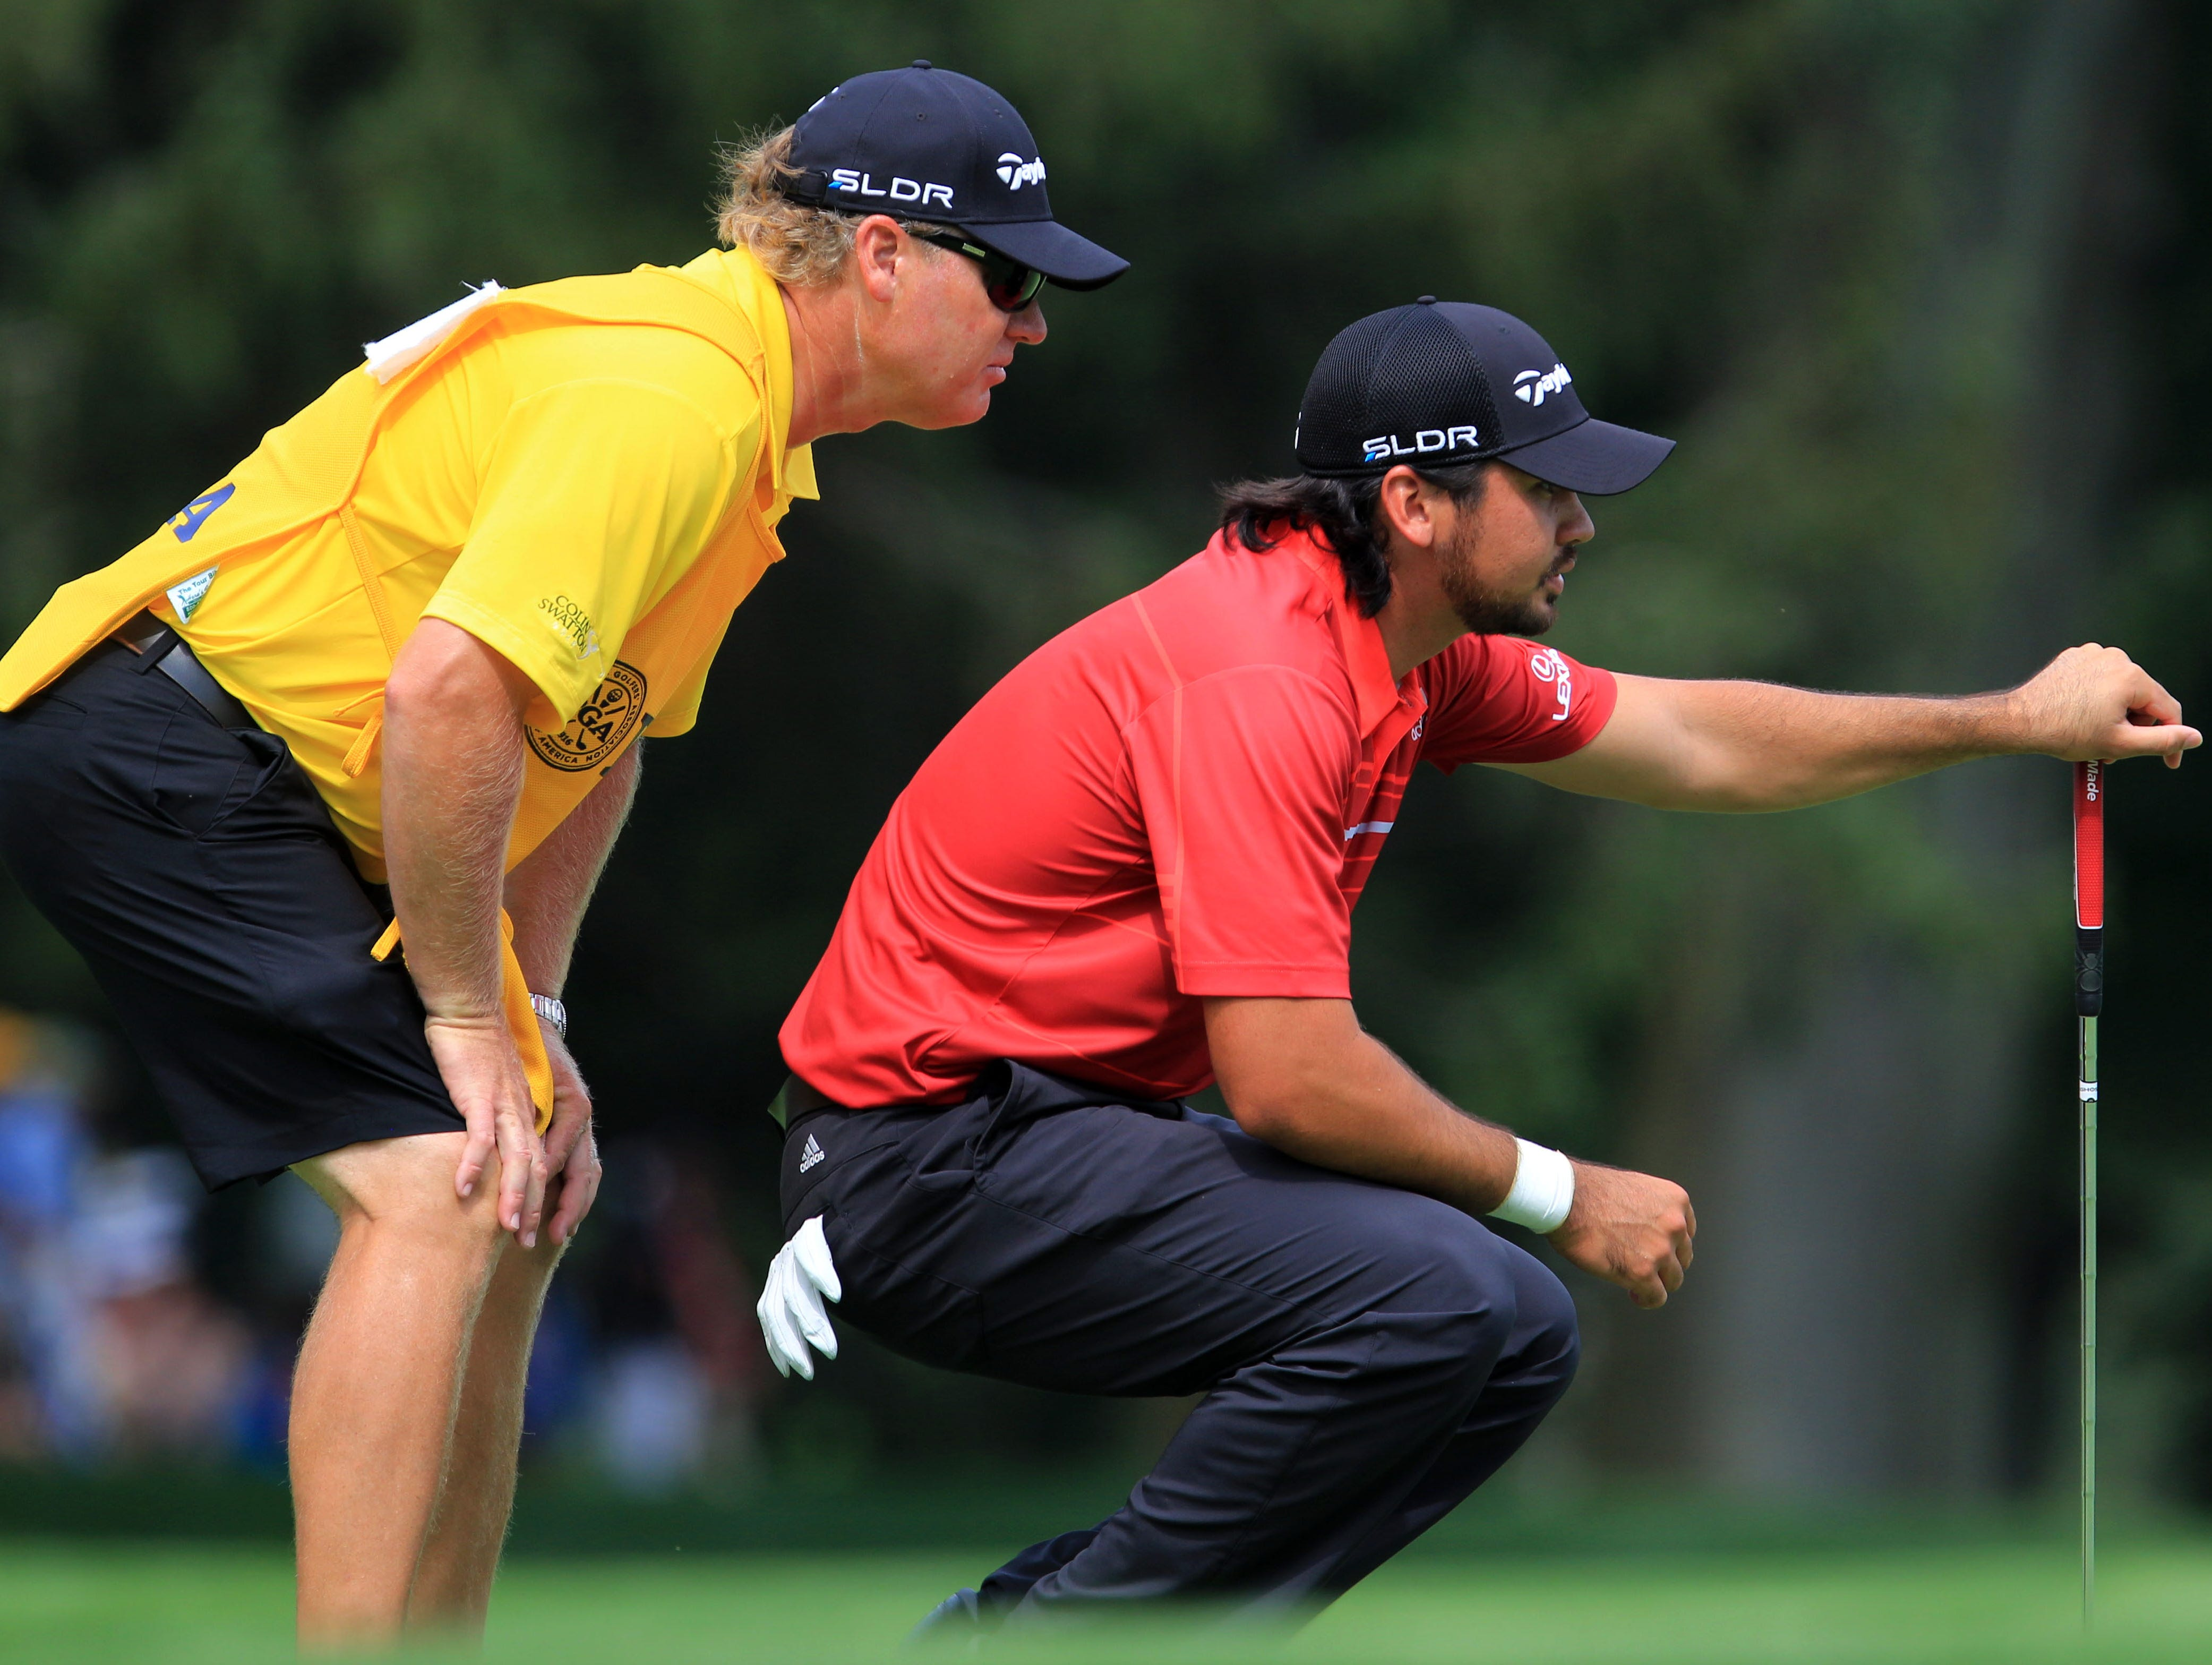 Jason Day lines up his putt on the 9th green.